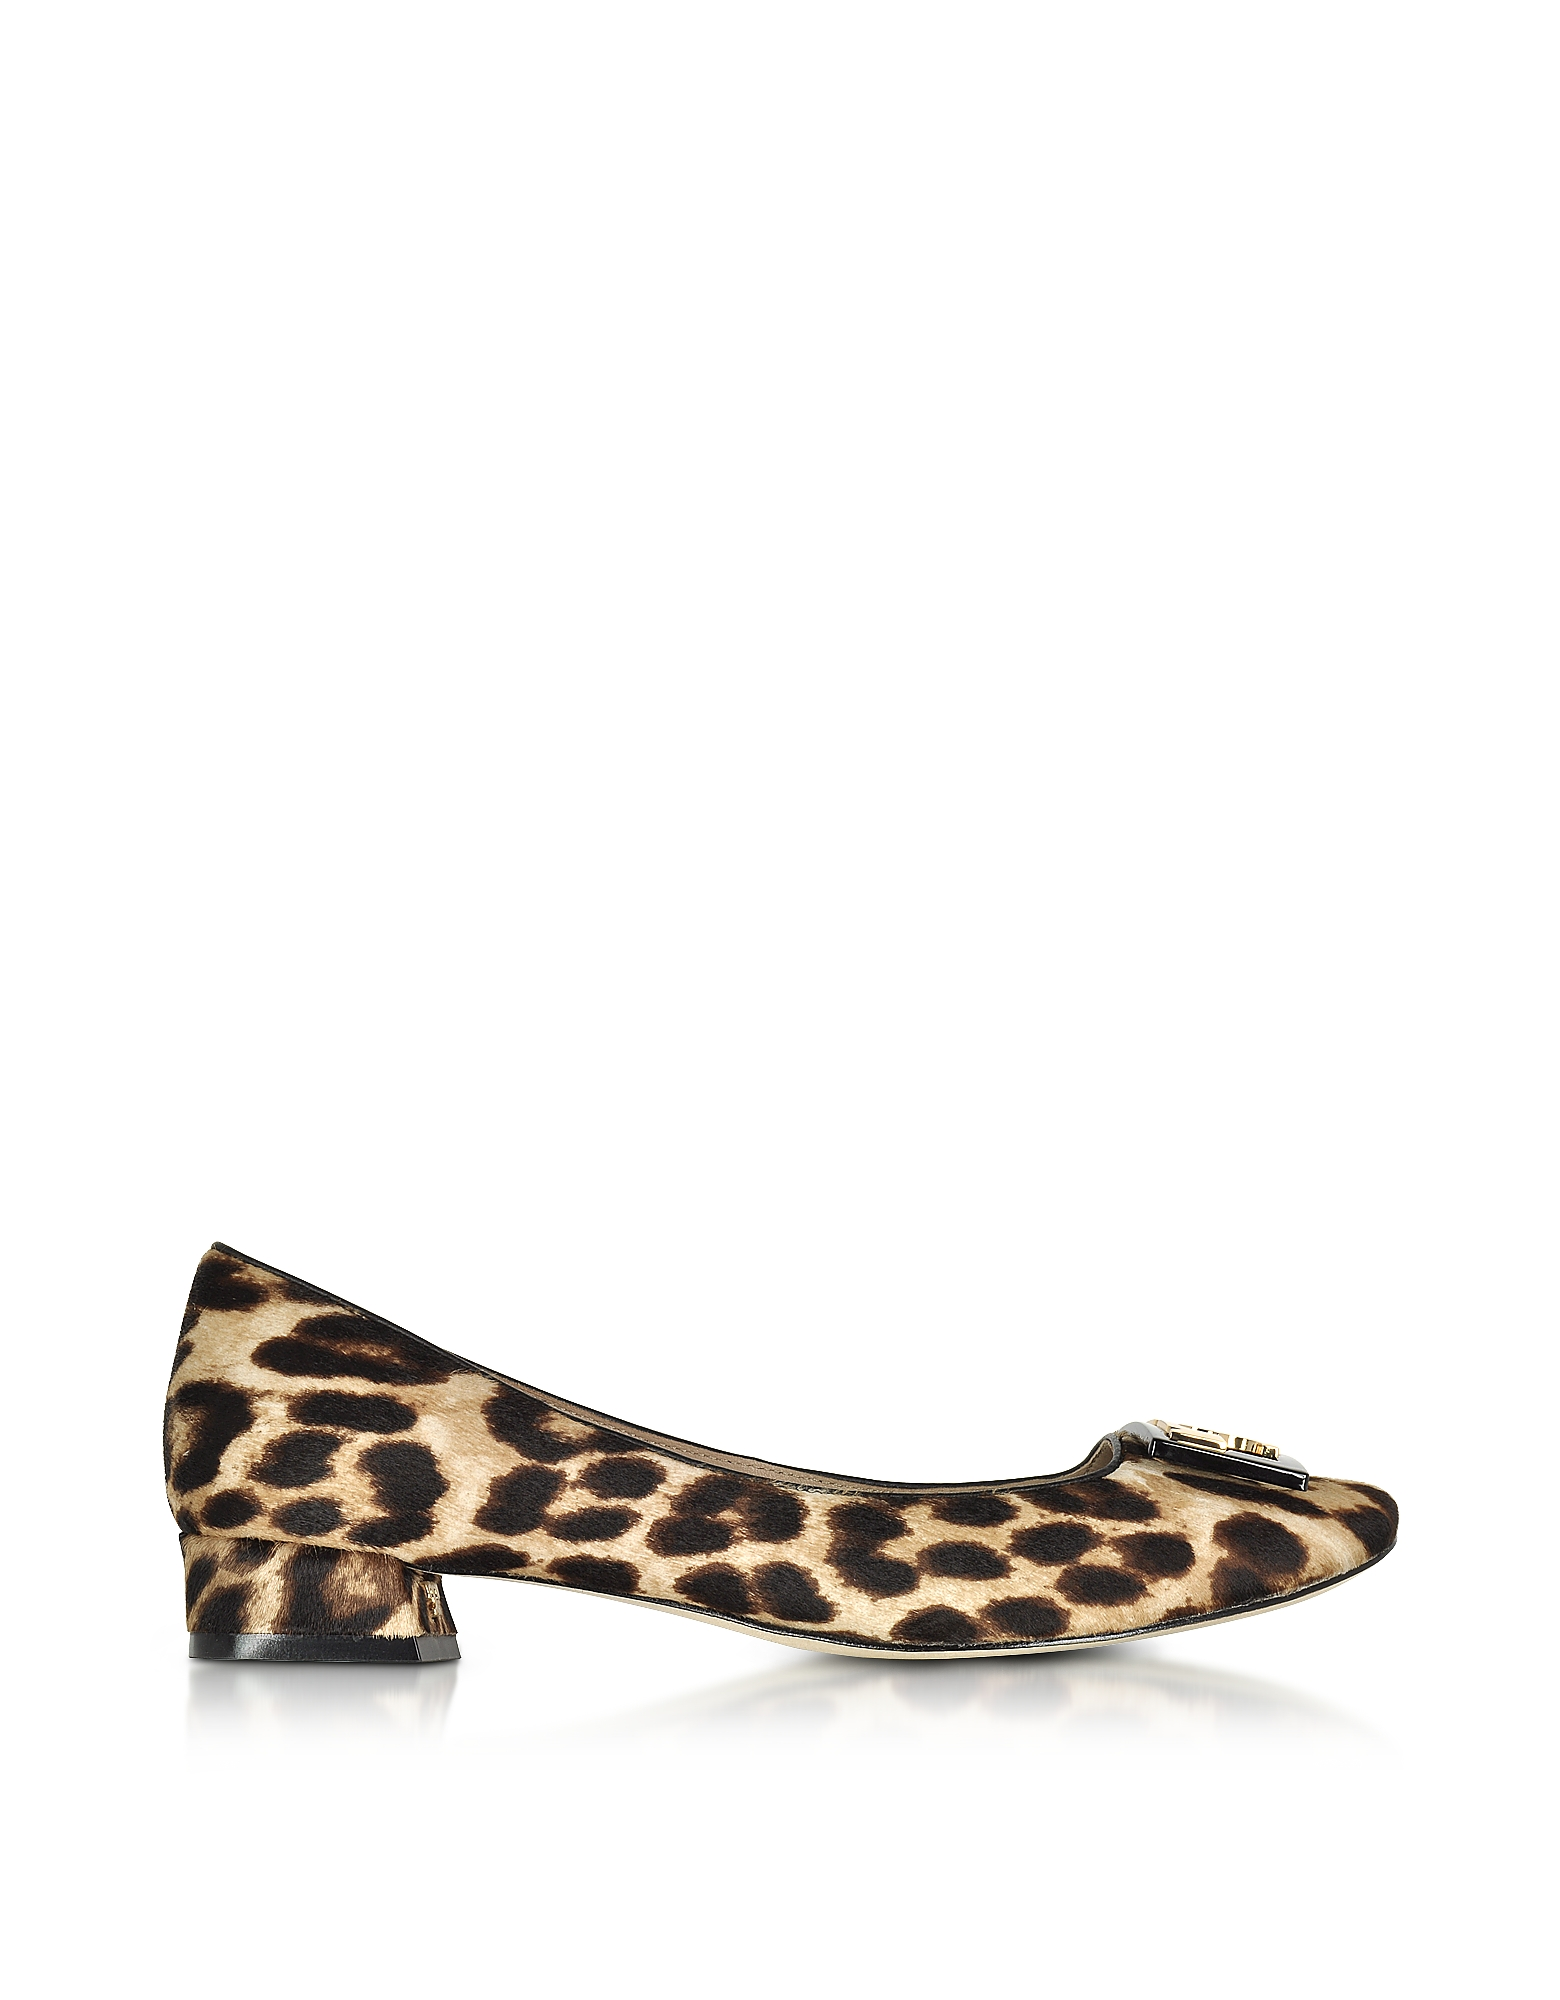 Tory Burch Shoes, Gigi Natural Leopard Print Leather Mid-heel Pumps